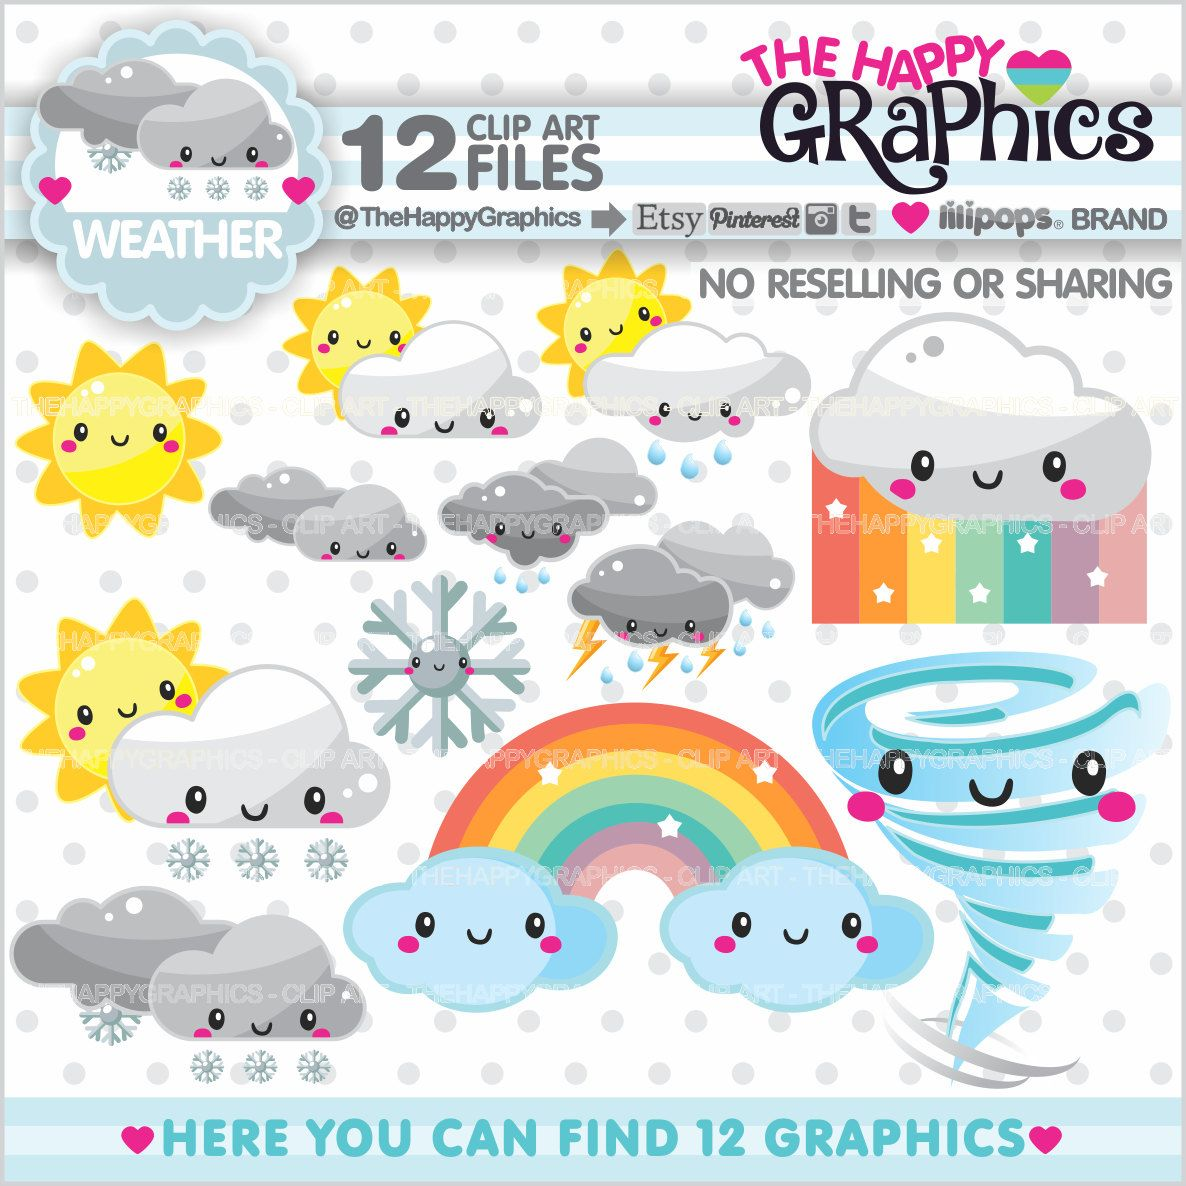 medium resolution of weather clipart 80 off weather graphics commercial use forecast clipart planner accessories weather icons cloud clipart sun kawaii